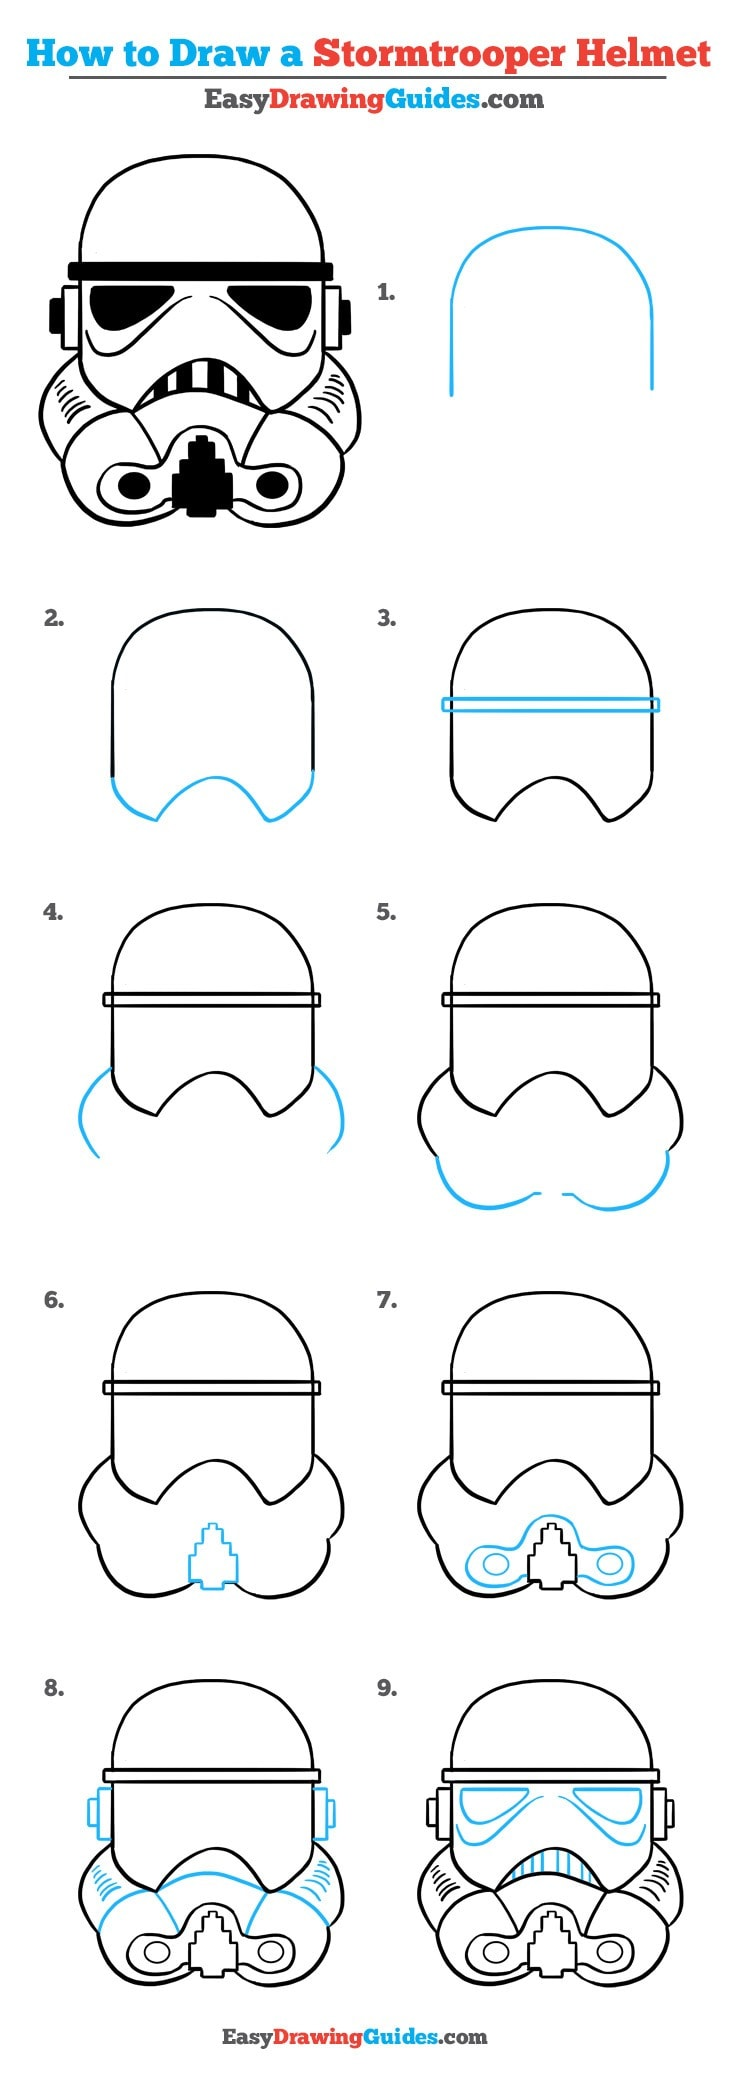 How to Draw Stormtrooper Helmet